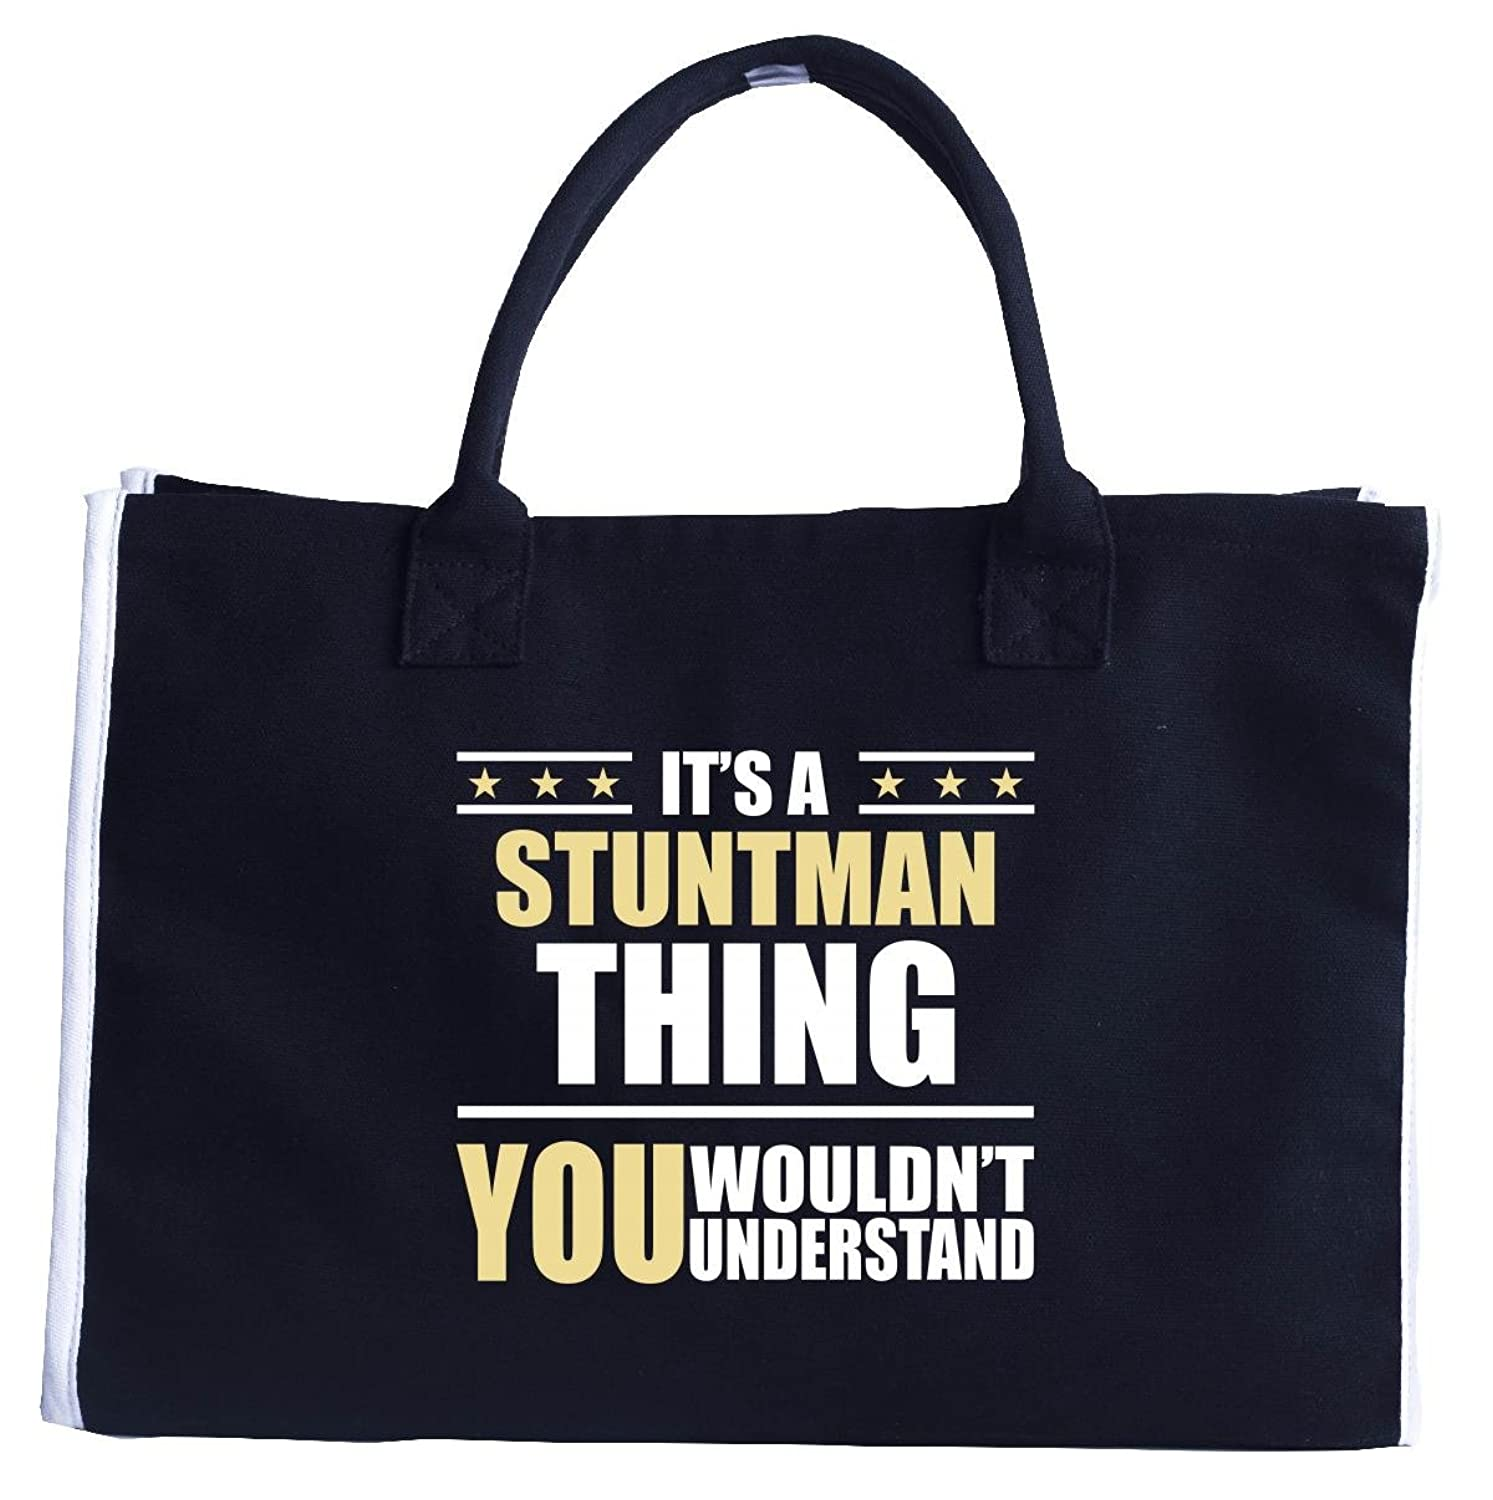 It's A Stuntman Thing You Wouldn't Understand - Fashion Tote Bag